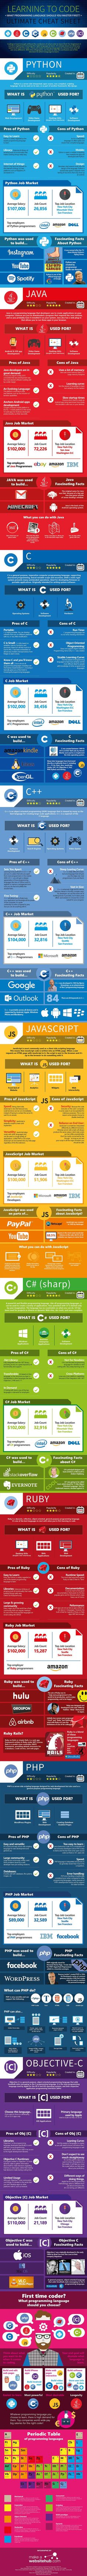 Learning To Code: Ultimate Cheat Sheet - #infographic